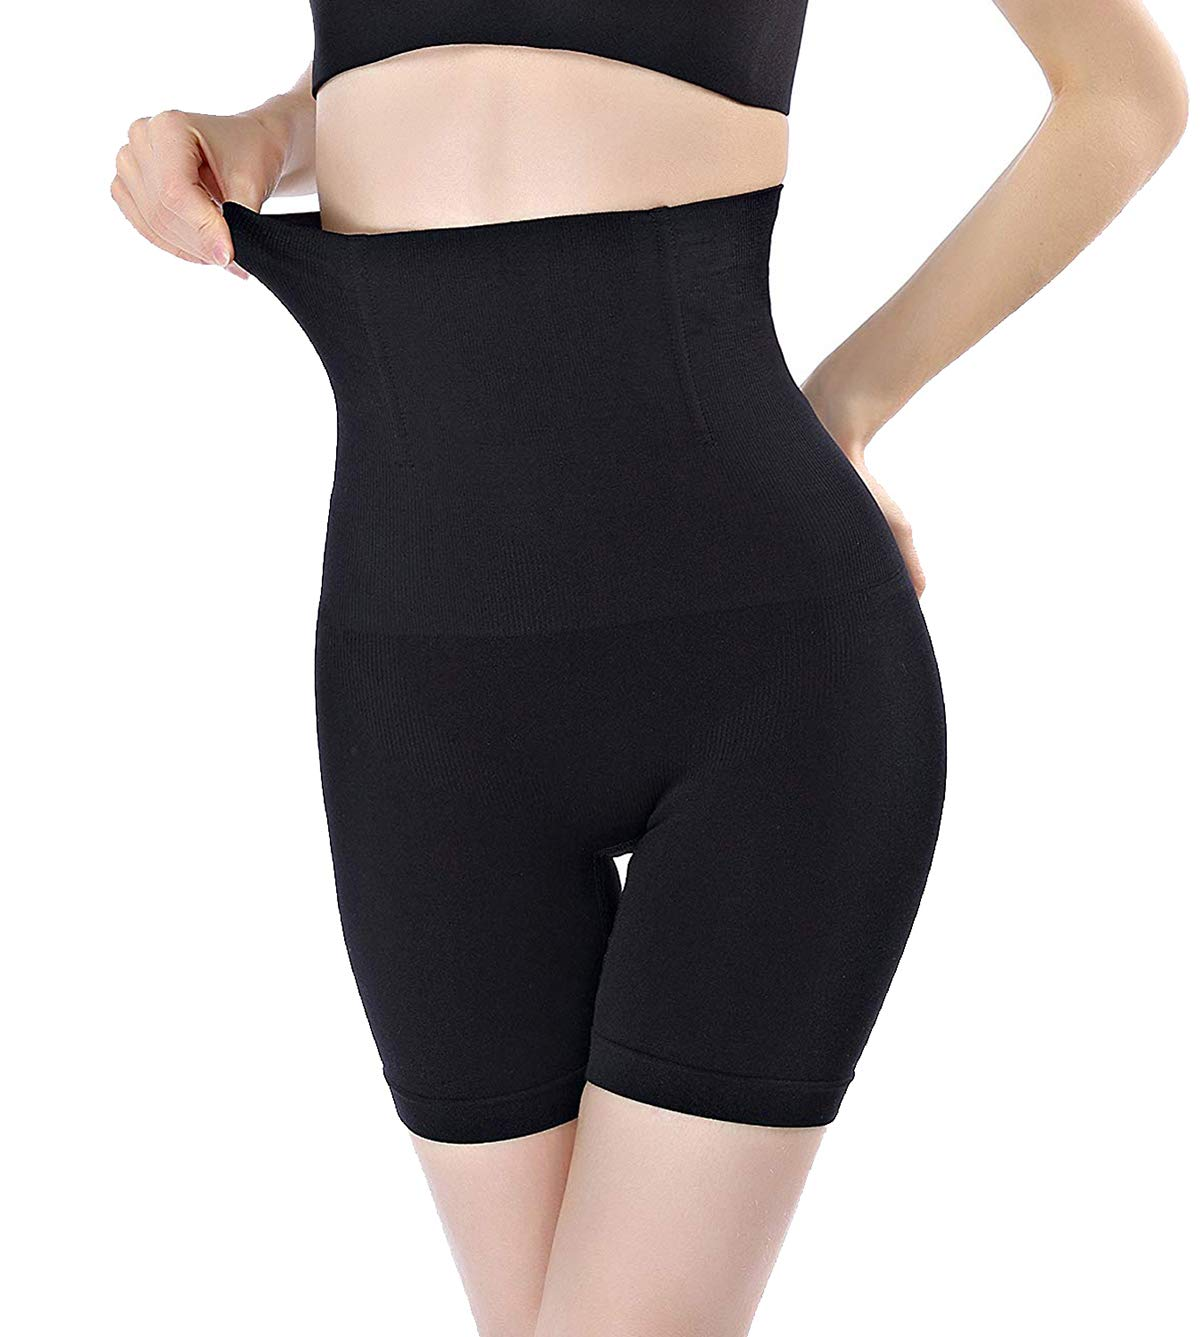 FOCUSSEXY High Waist Shapewear for Women Tummy Control Thong Bodyshorts Thigh Slimmers Panties